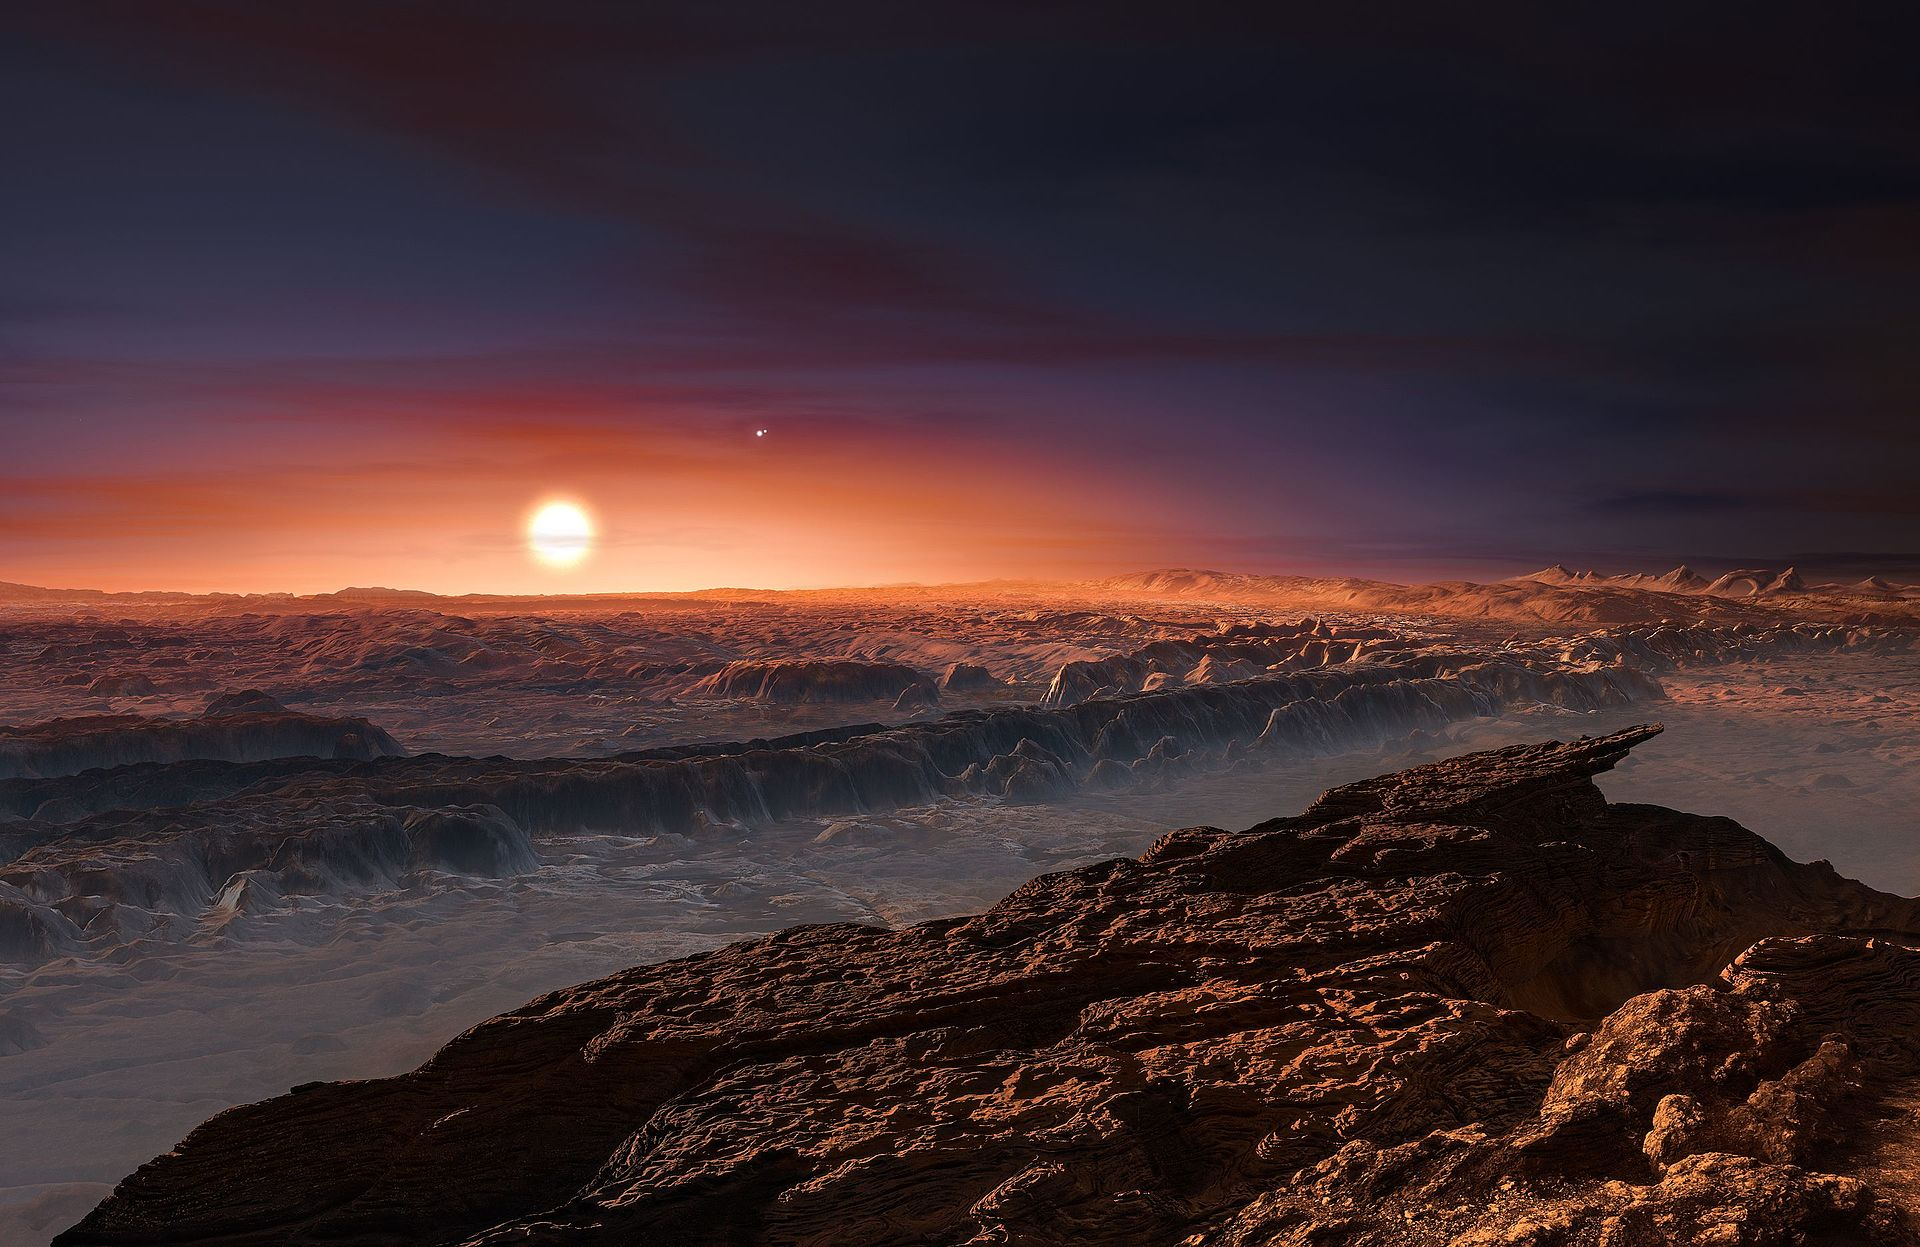 NASA claims that Earth-like planet Proxima b unlikely to host life